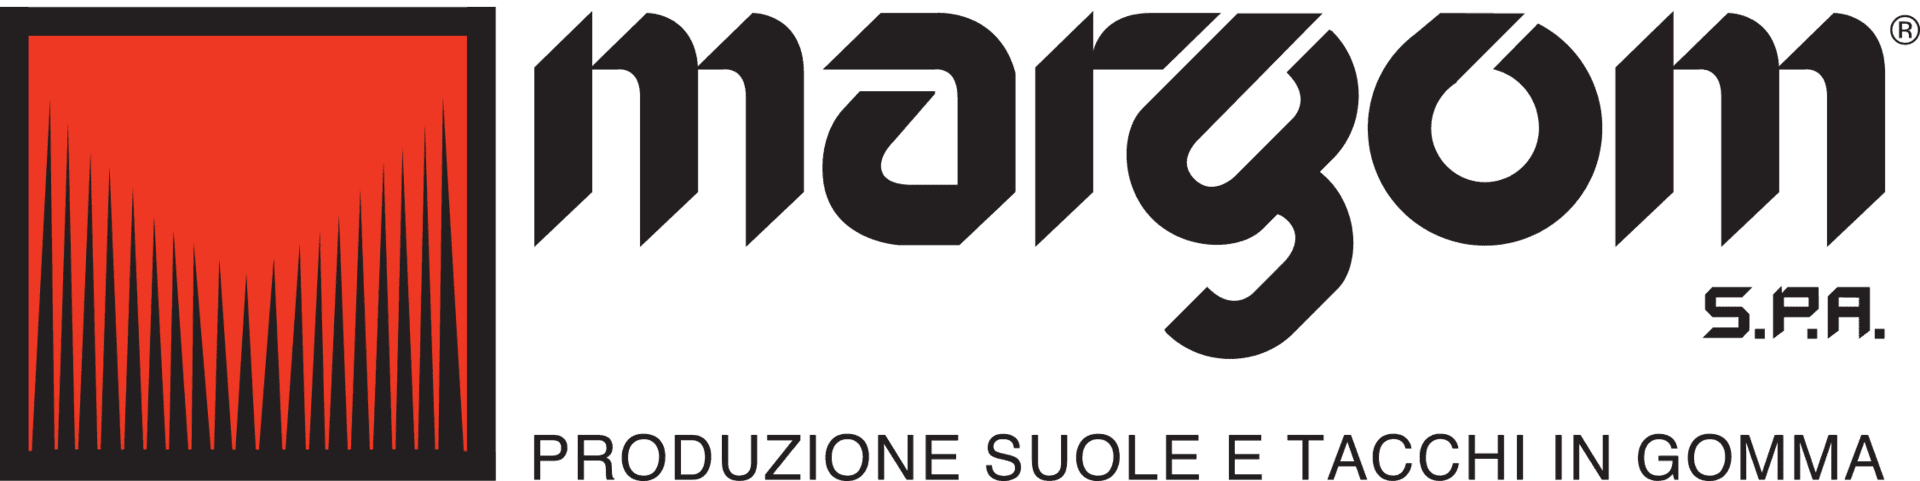 MARGOM spa - LOGO